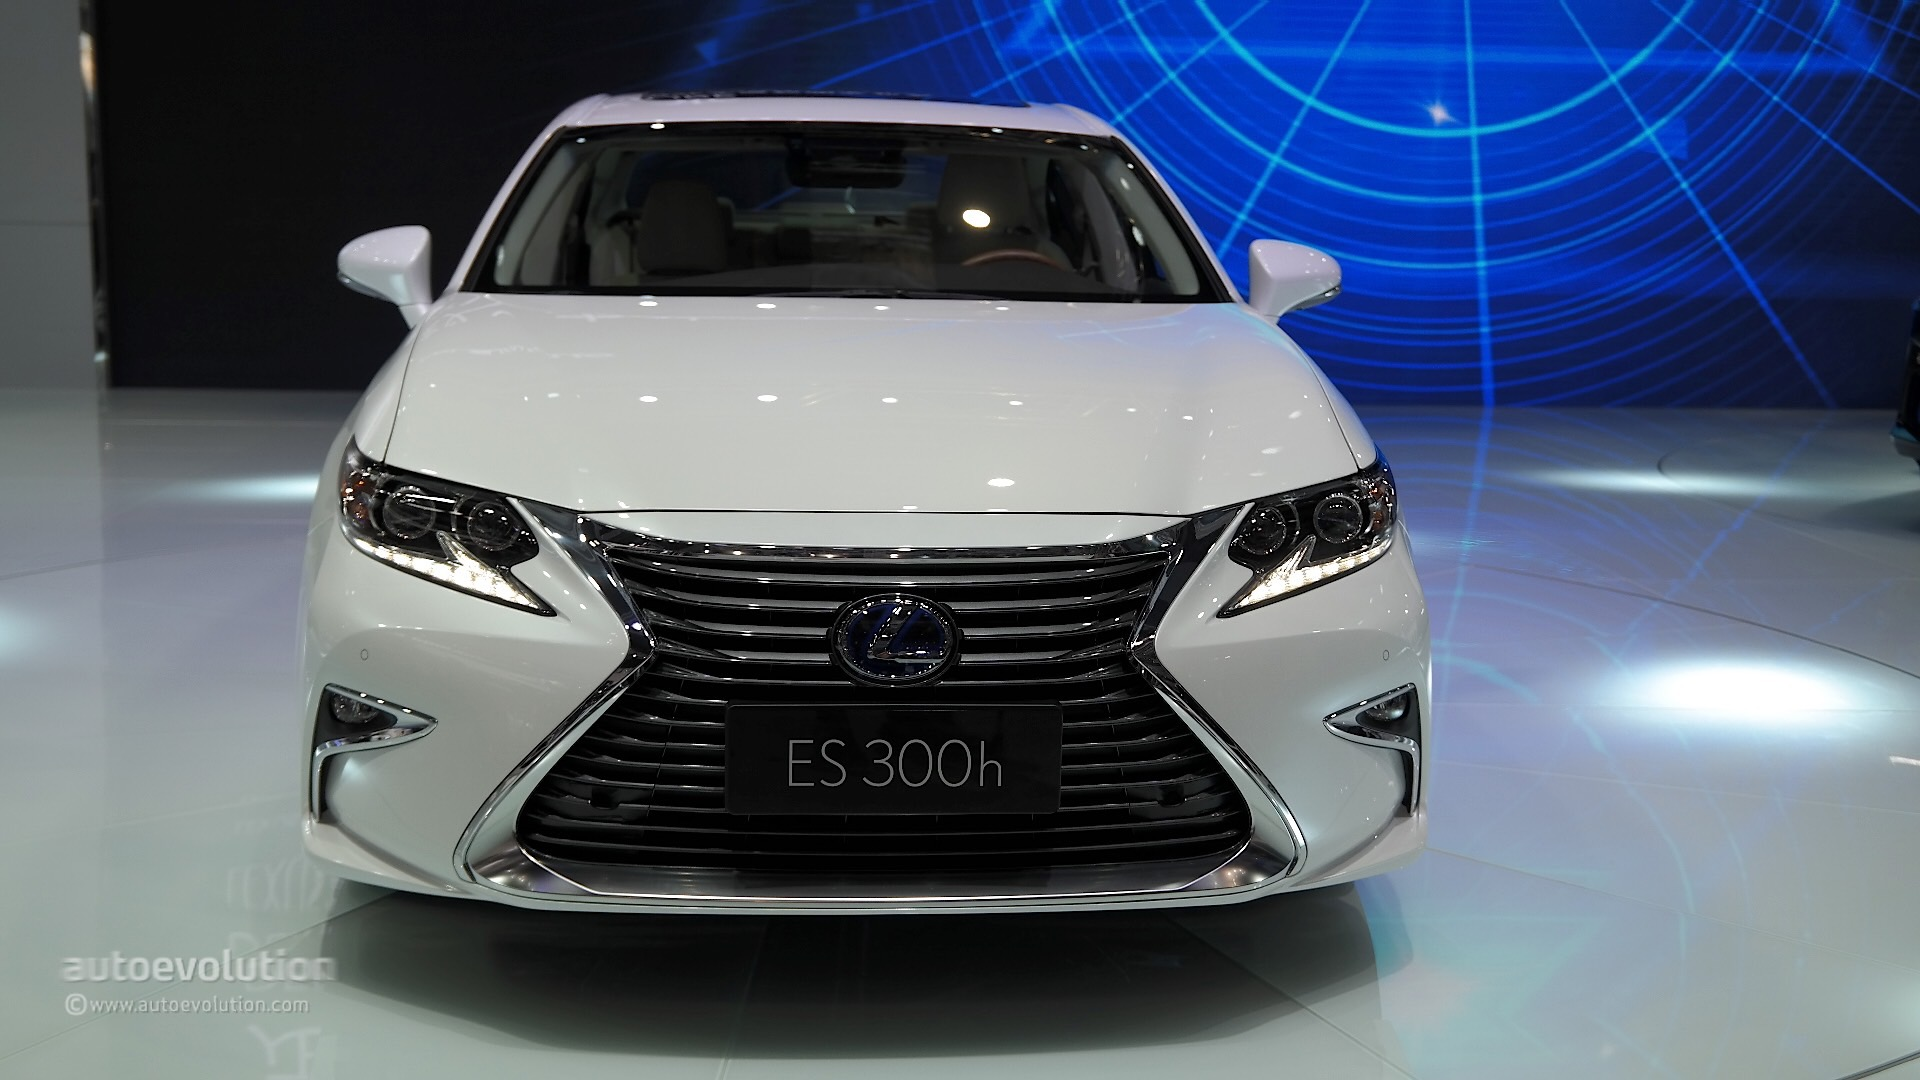 https://s1.cdn.autoevolution.com/images/news/2016-lexus-es-facelift-is-full-of-self-esteem-at-auto-shanghai-2015-live-photos-94617_1.jpg